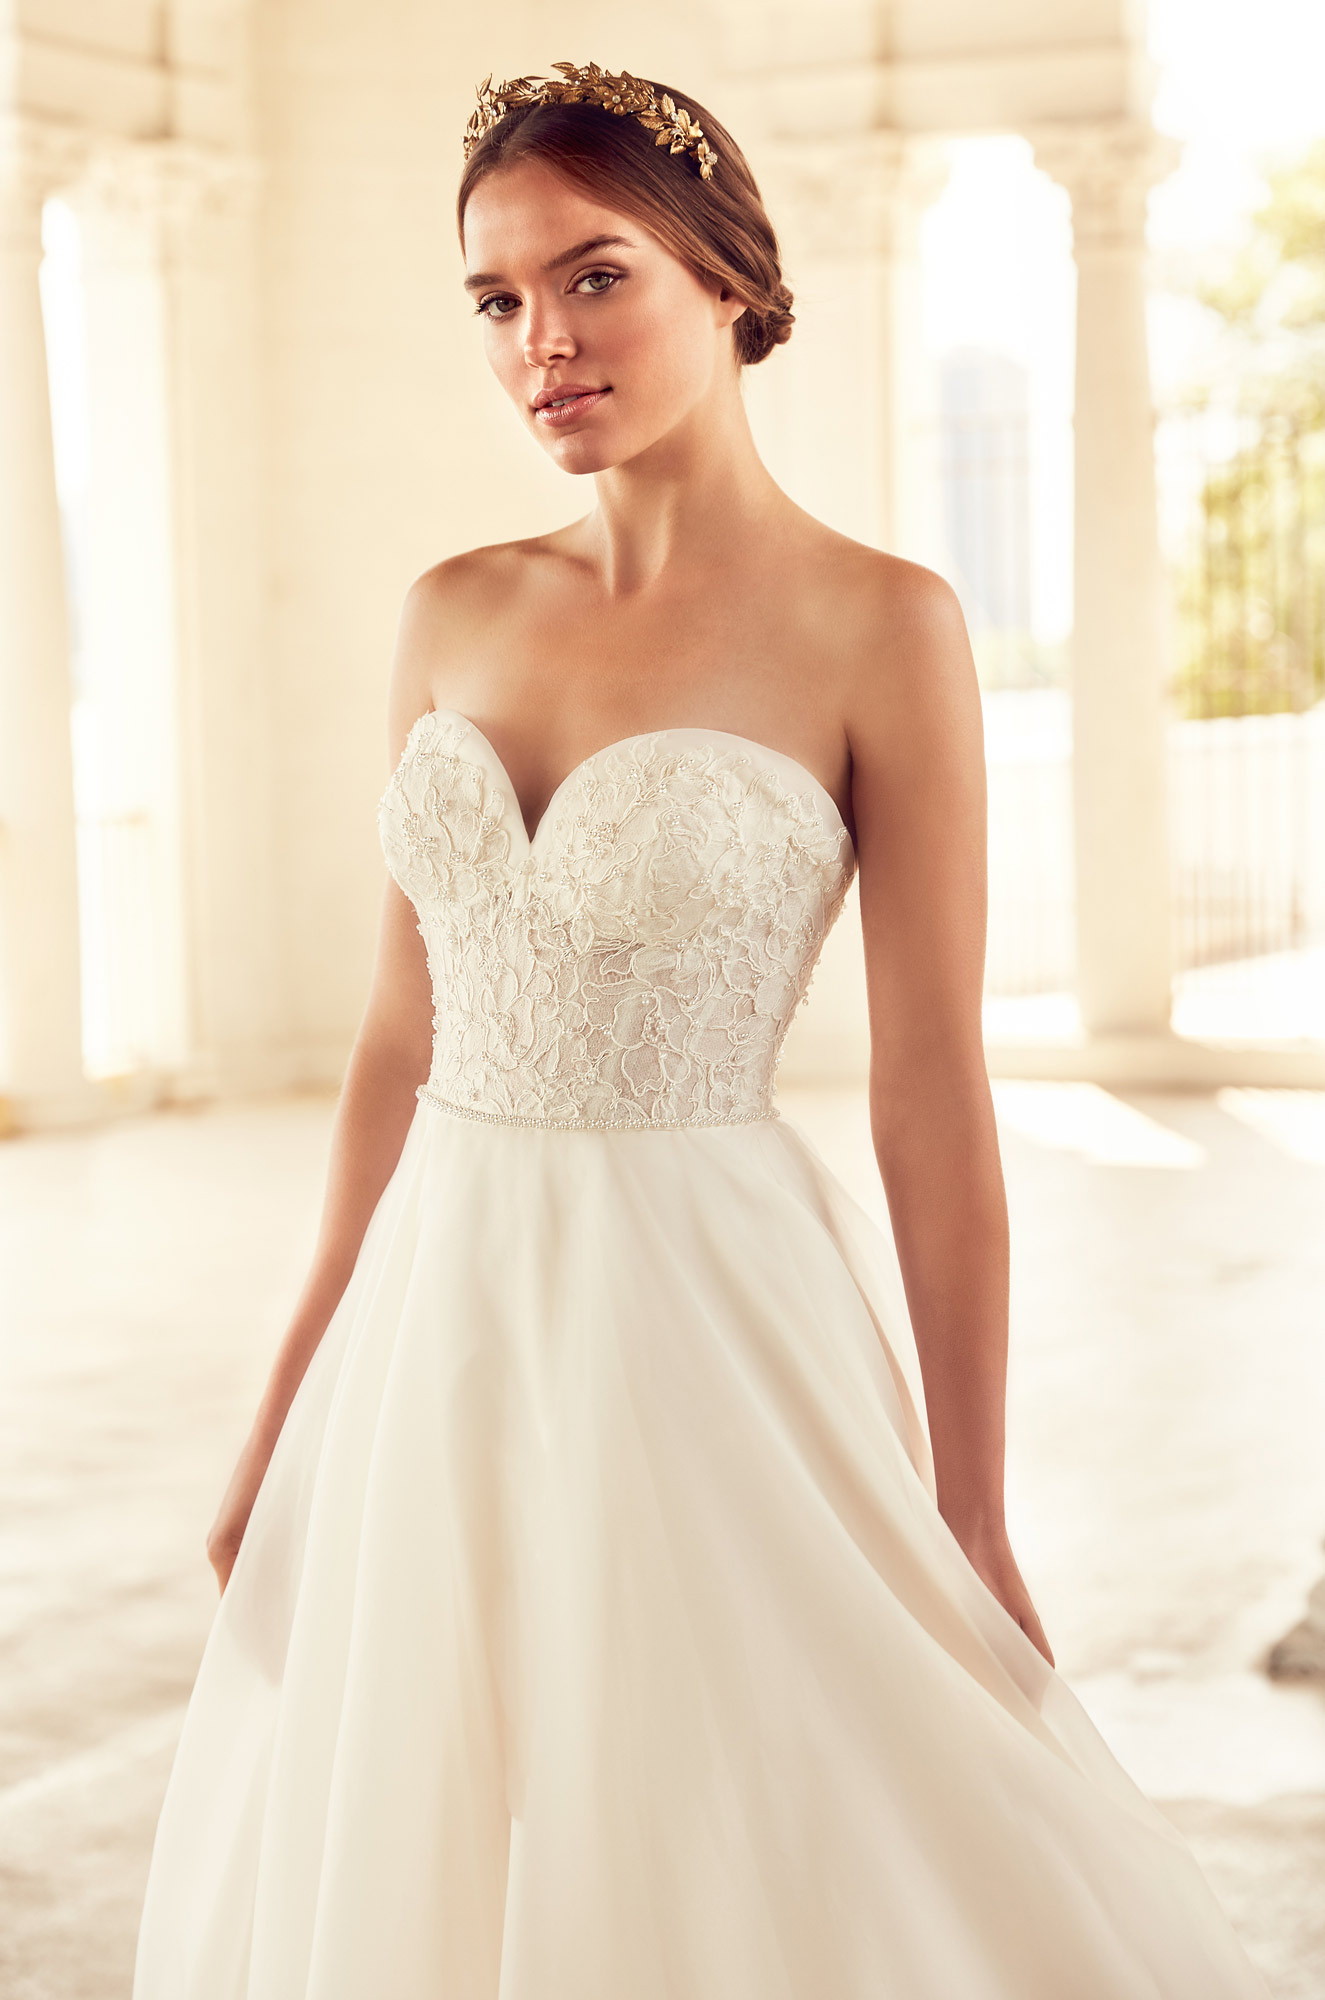 Regal Ball Gown Wedding Dress - Style #4785 | Paloma Blanca